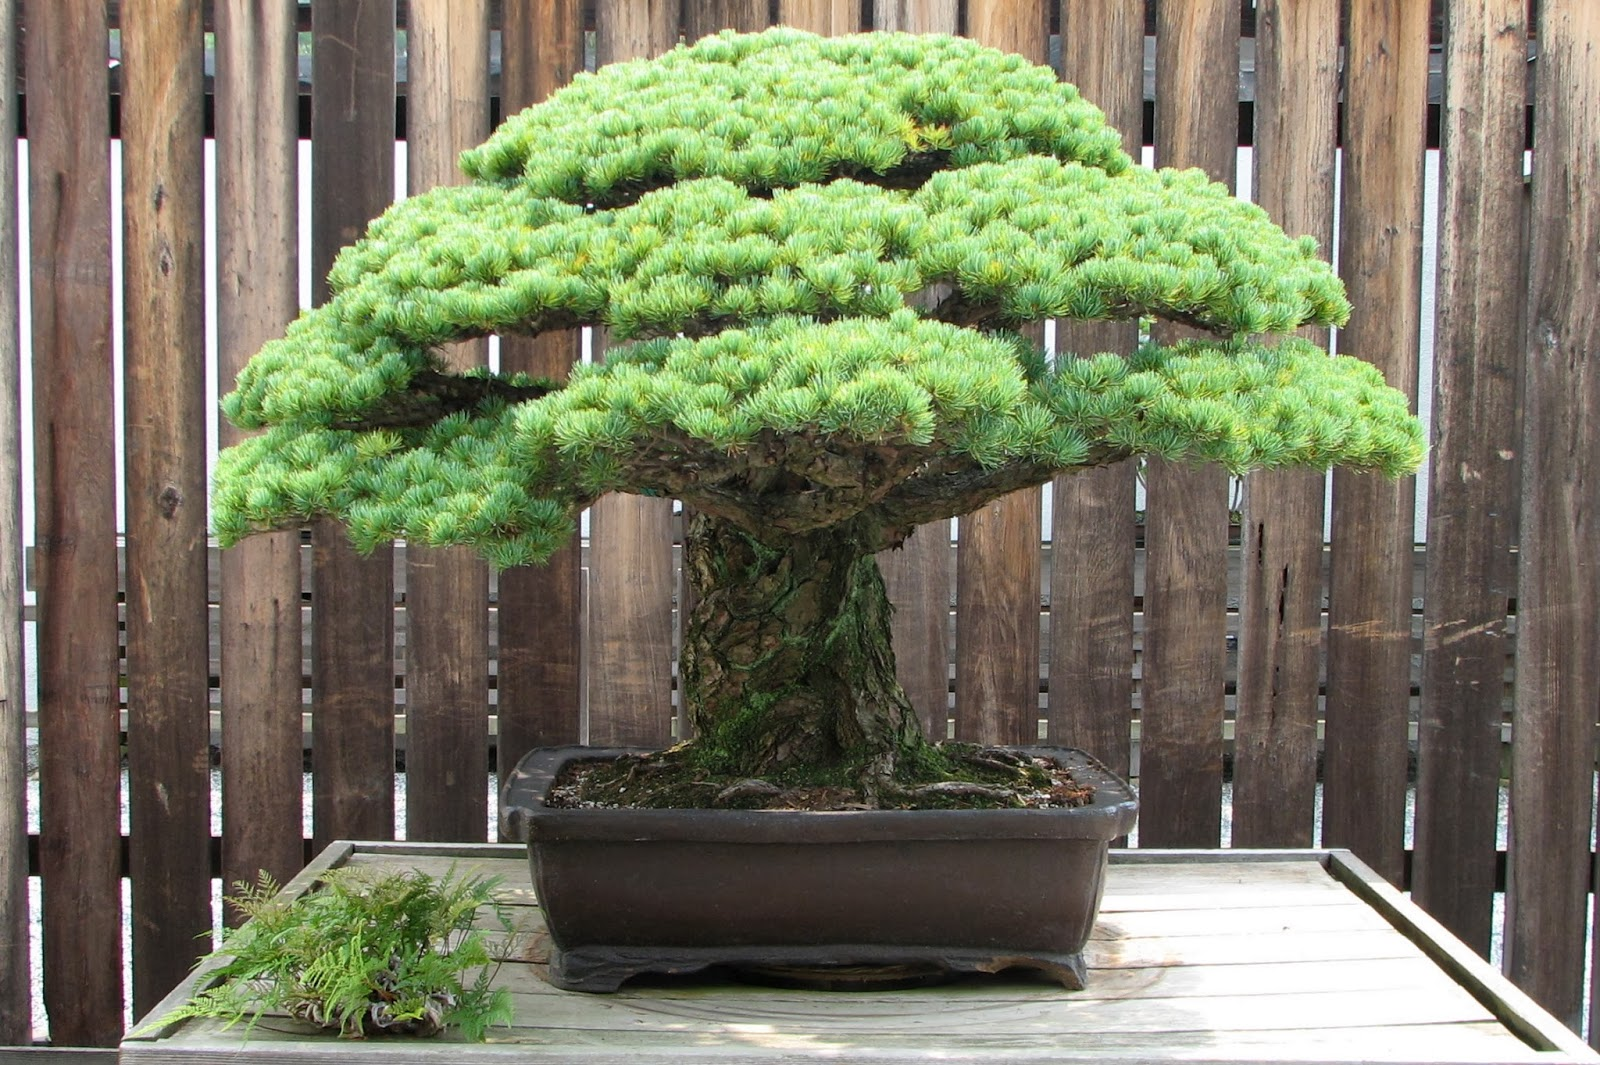 400 Year Old Japanese White Pine Bonsai That Survived The